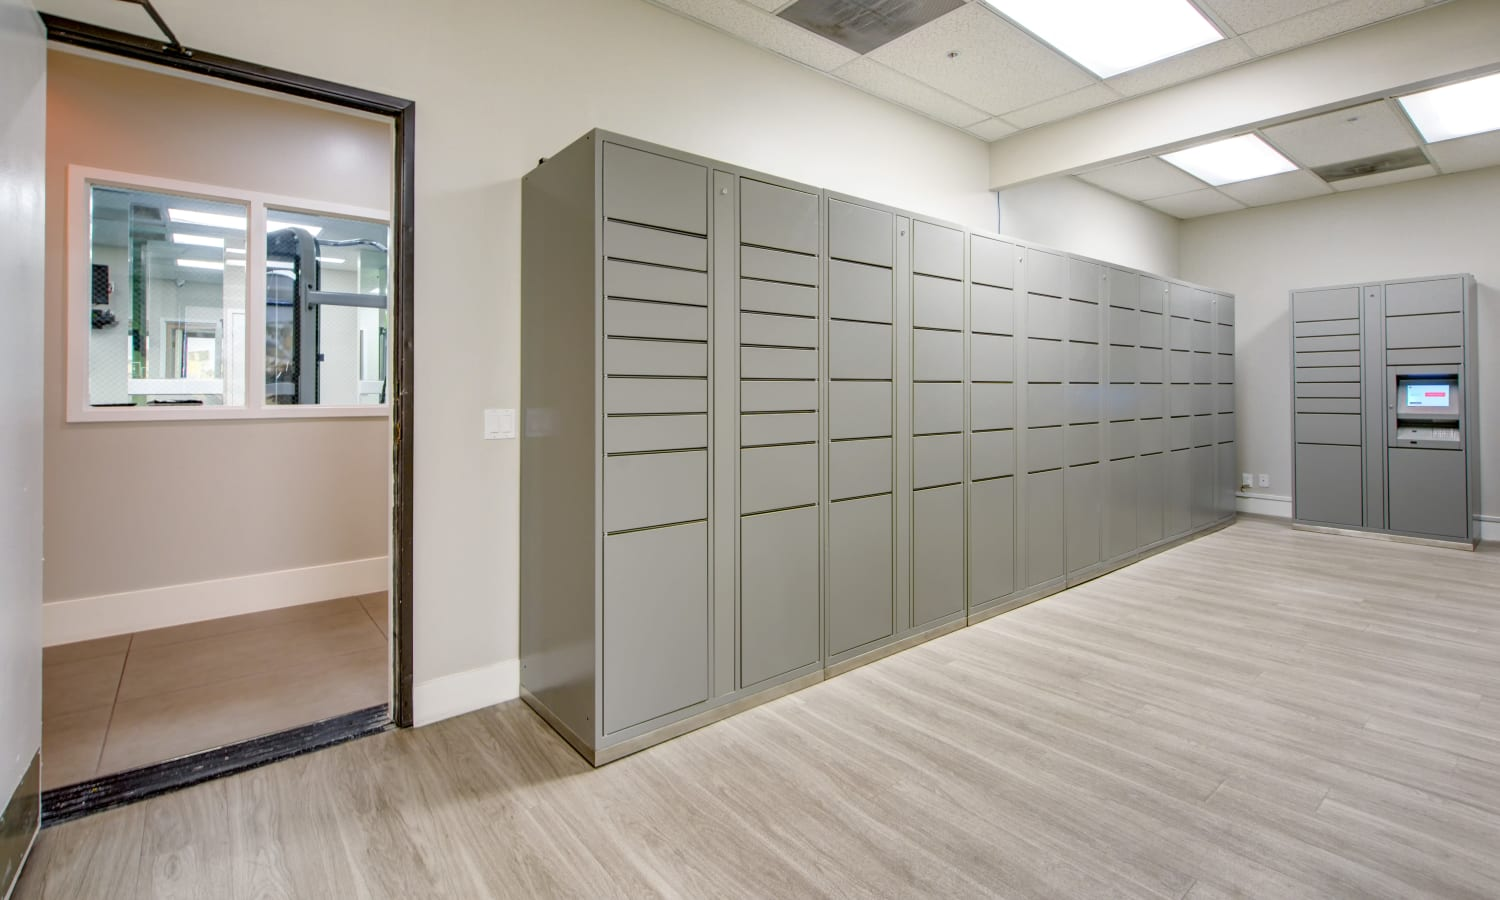 Package Lockers at Sofi at 3rd in Long Beach, CA